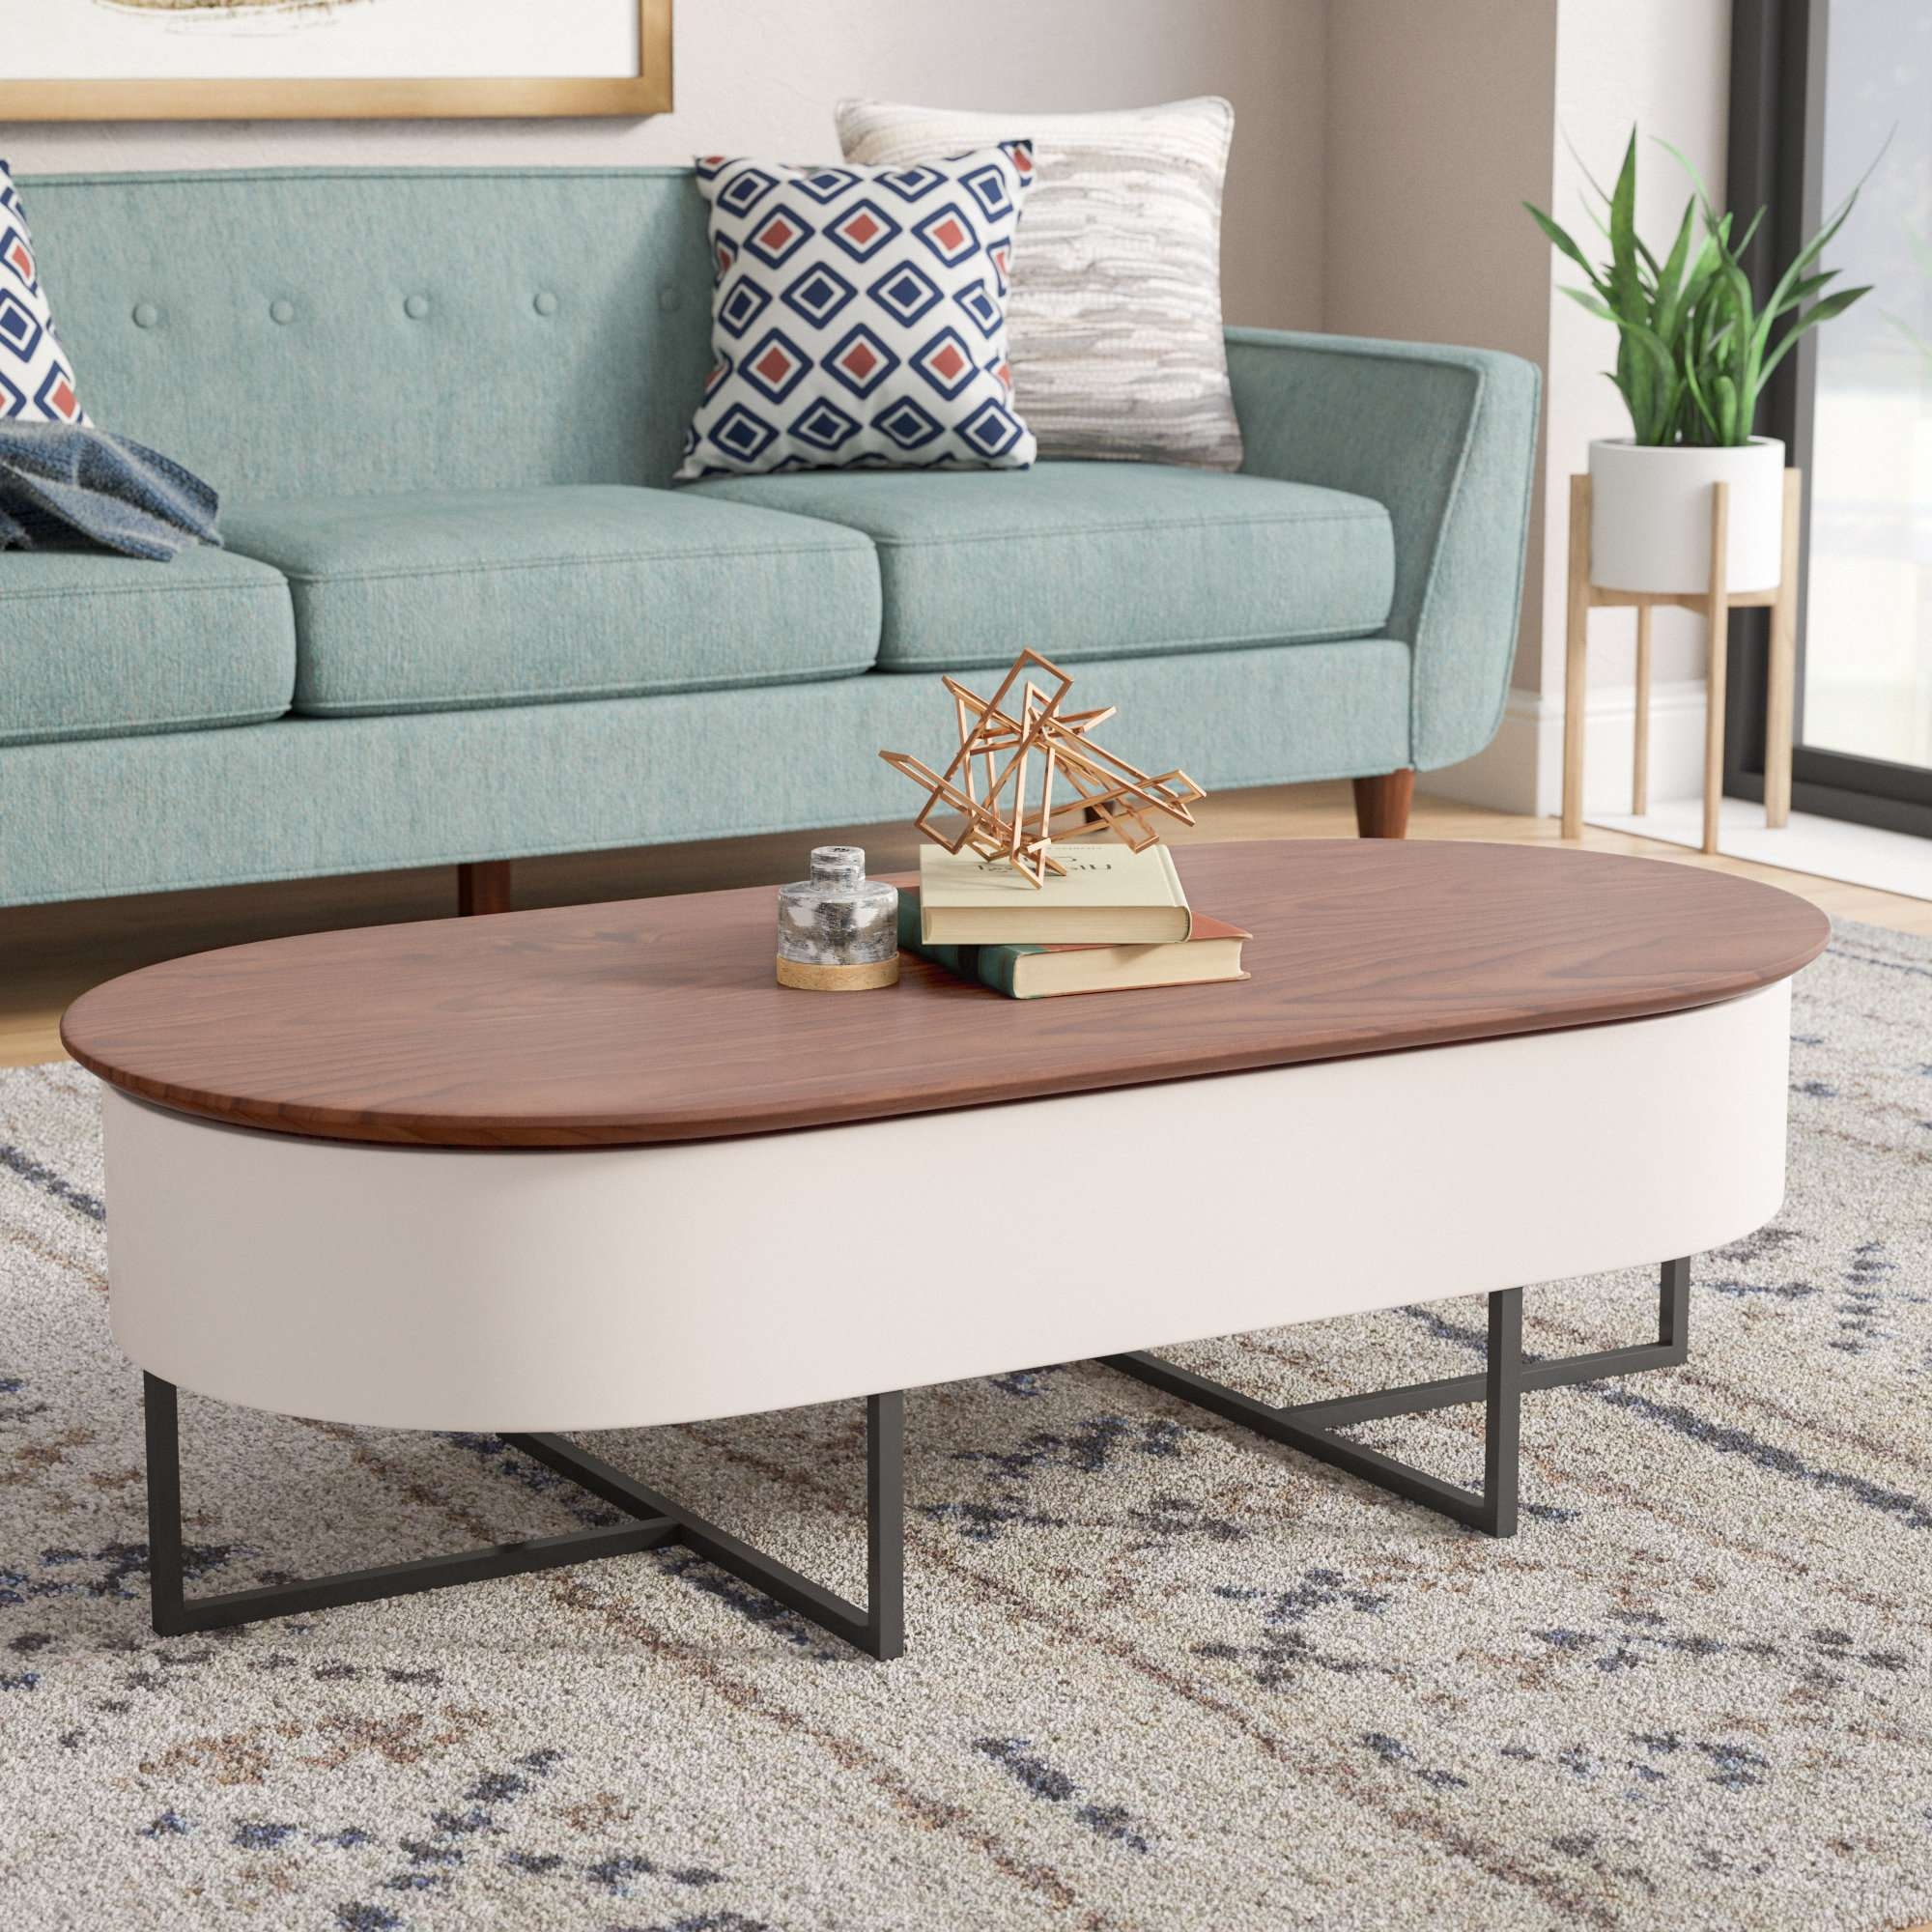 Popular Lift Up Coffee Tables Throughout Lift Top Coffee Tables You'll Love (View 13 of 20)